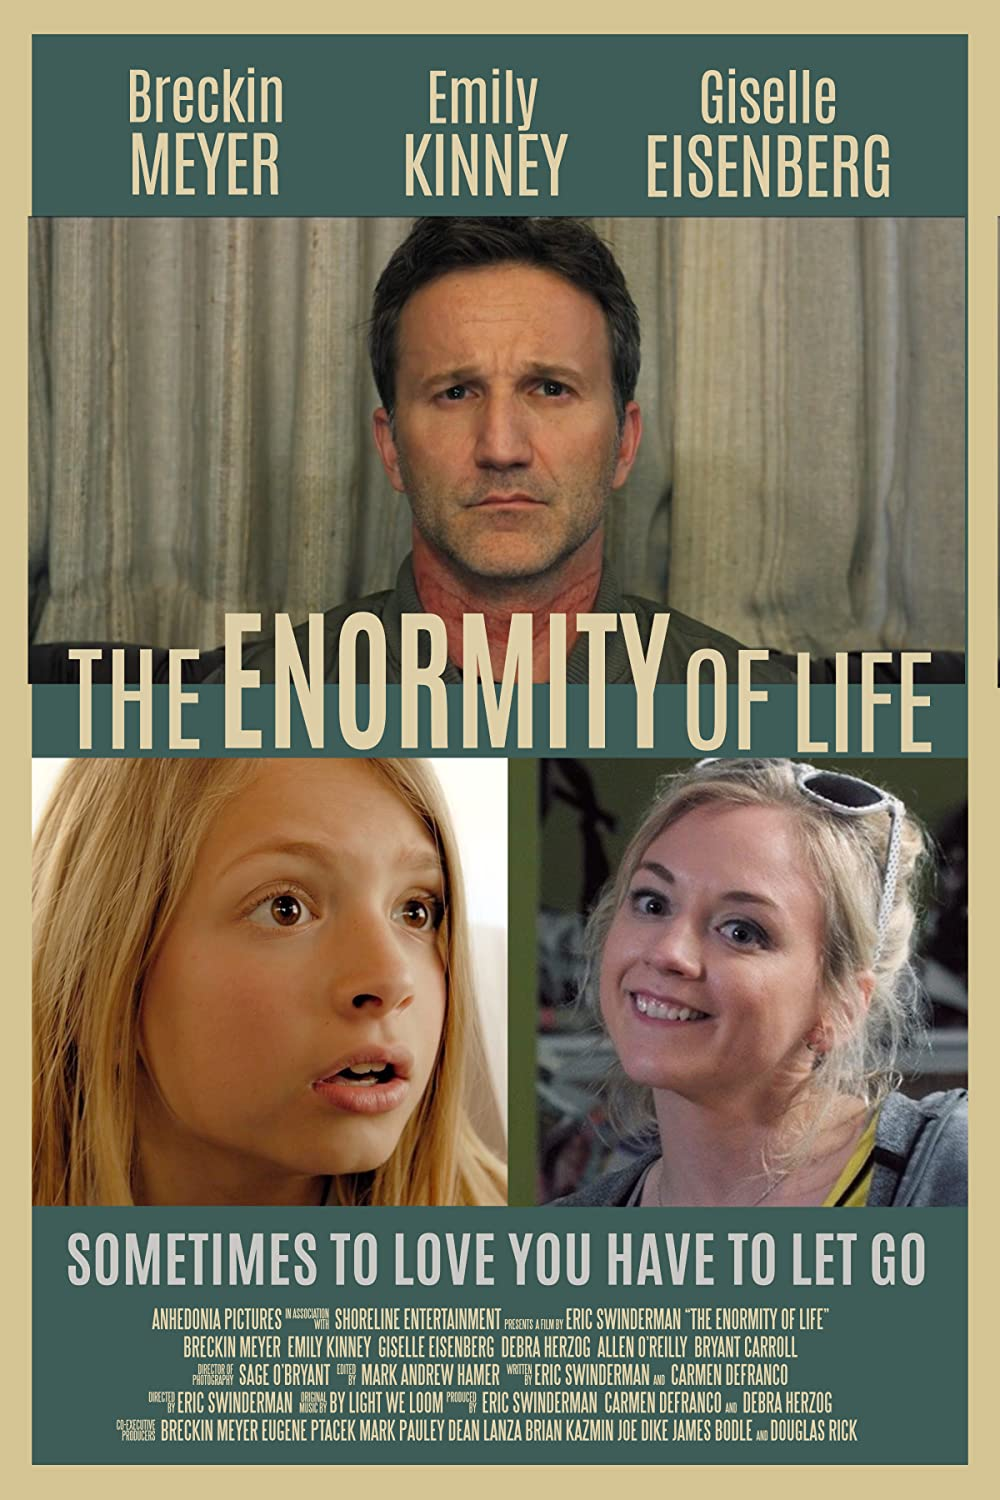 Watch The Enormity of Life Online